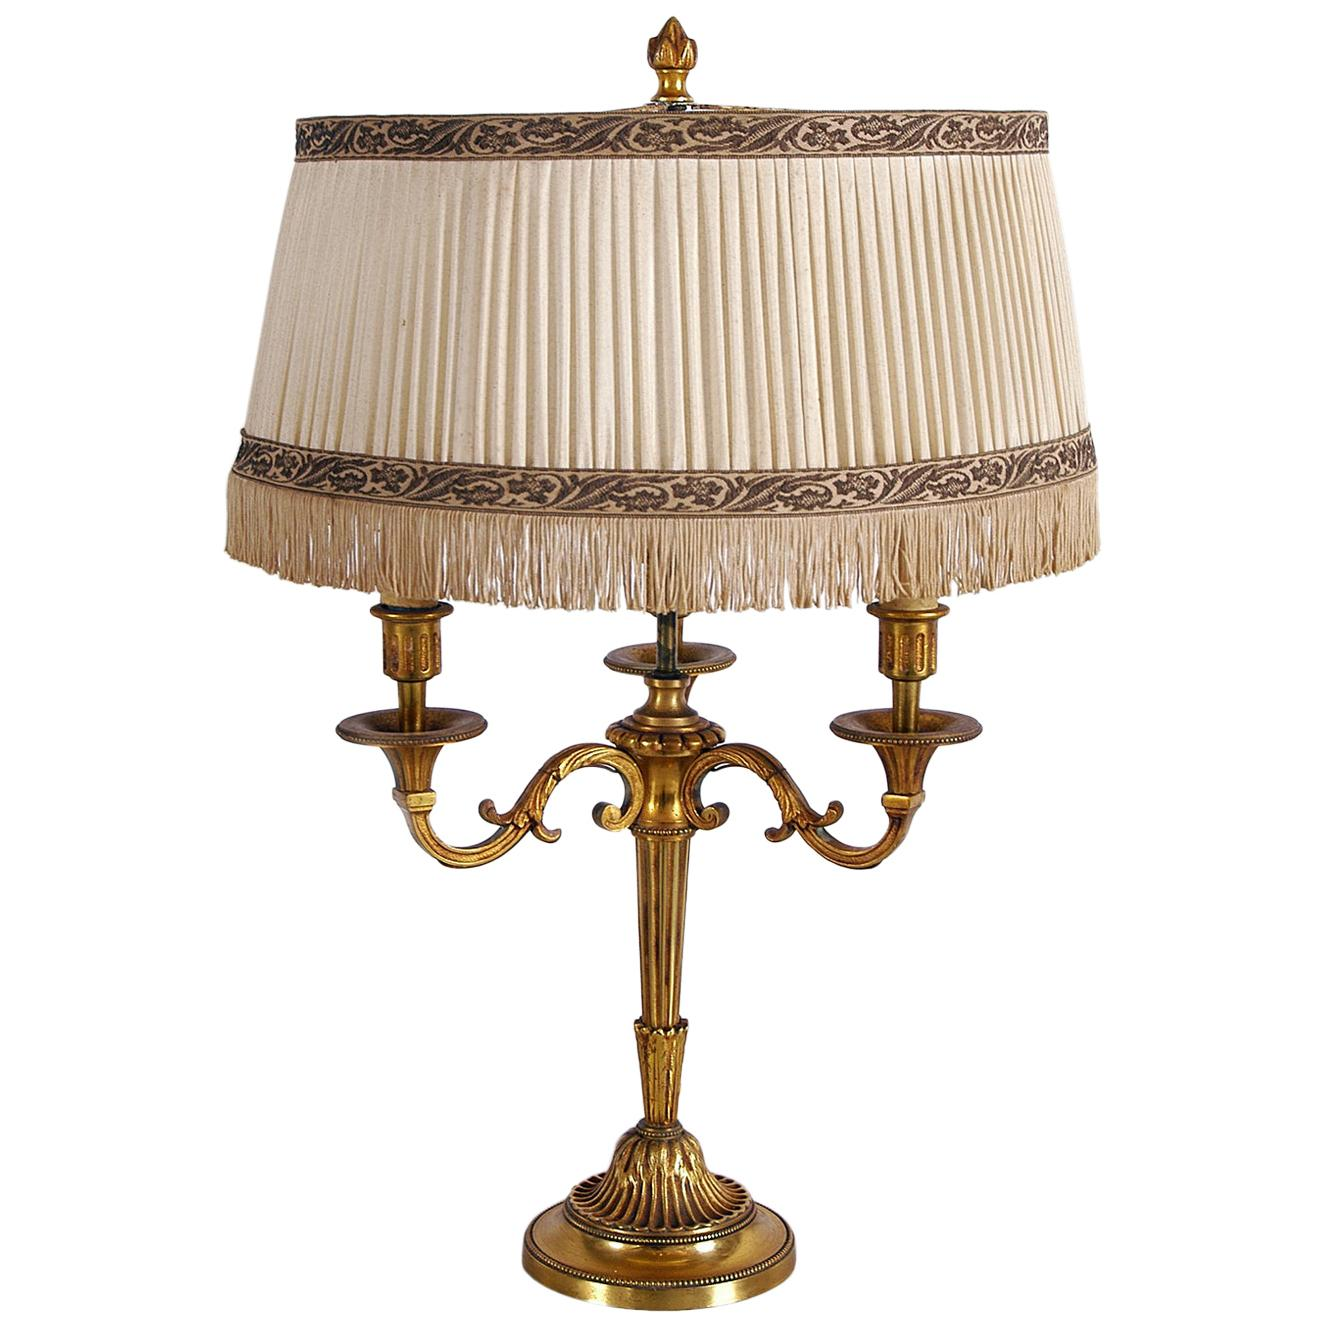 Mid-20th Century French Gilt Brass Bouillotte Table Lamp